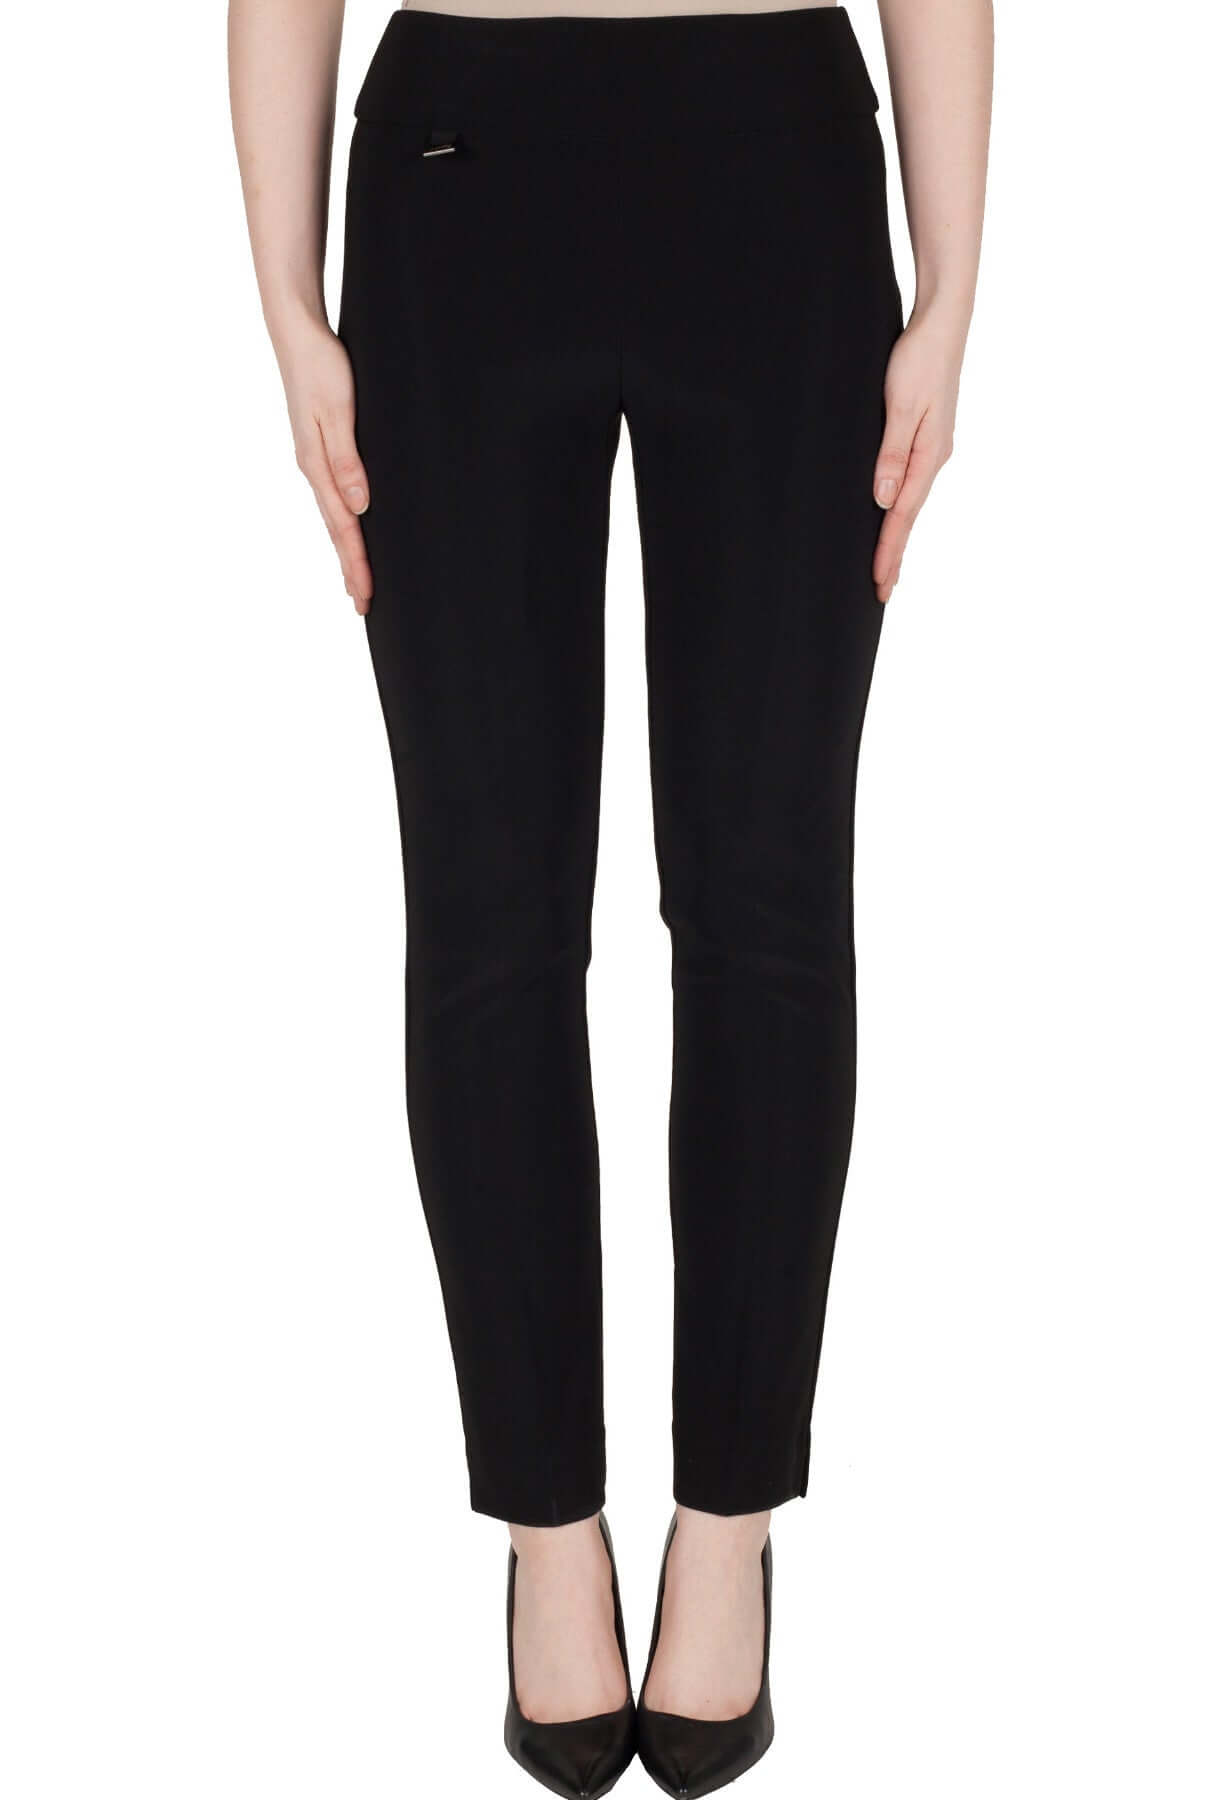 Joseph Ribkoff slim leg pull on jersey pant with side split 144092